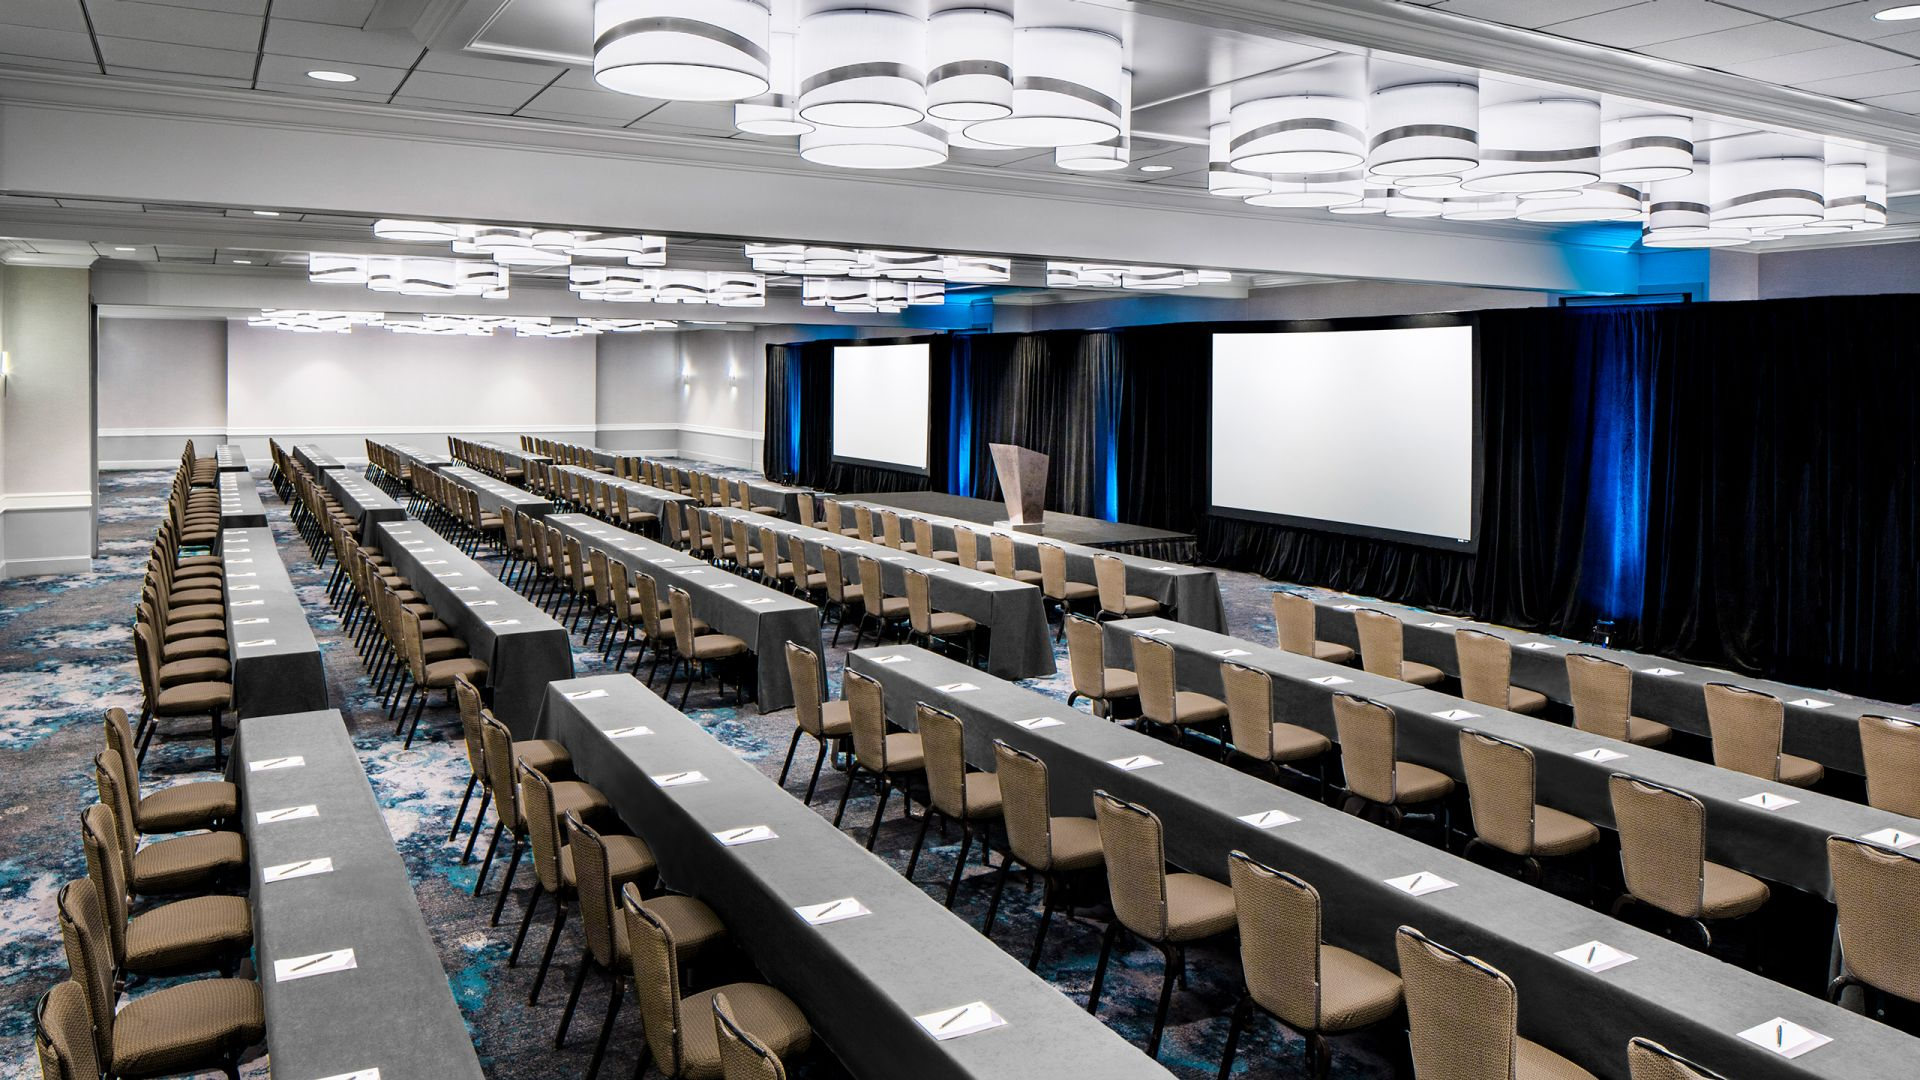 Hyatt Regency Newport Beach Ballroom Meeting Space